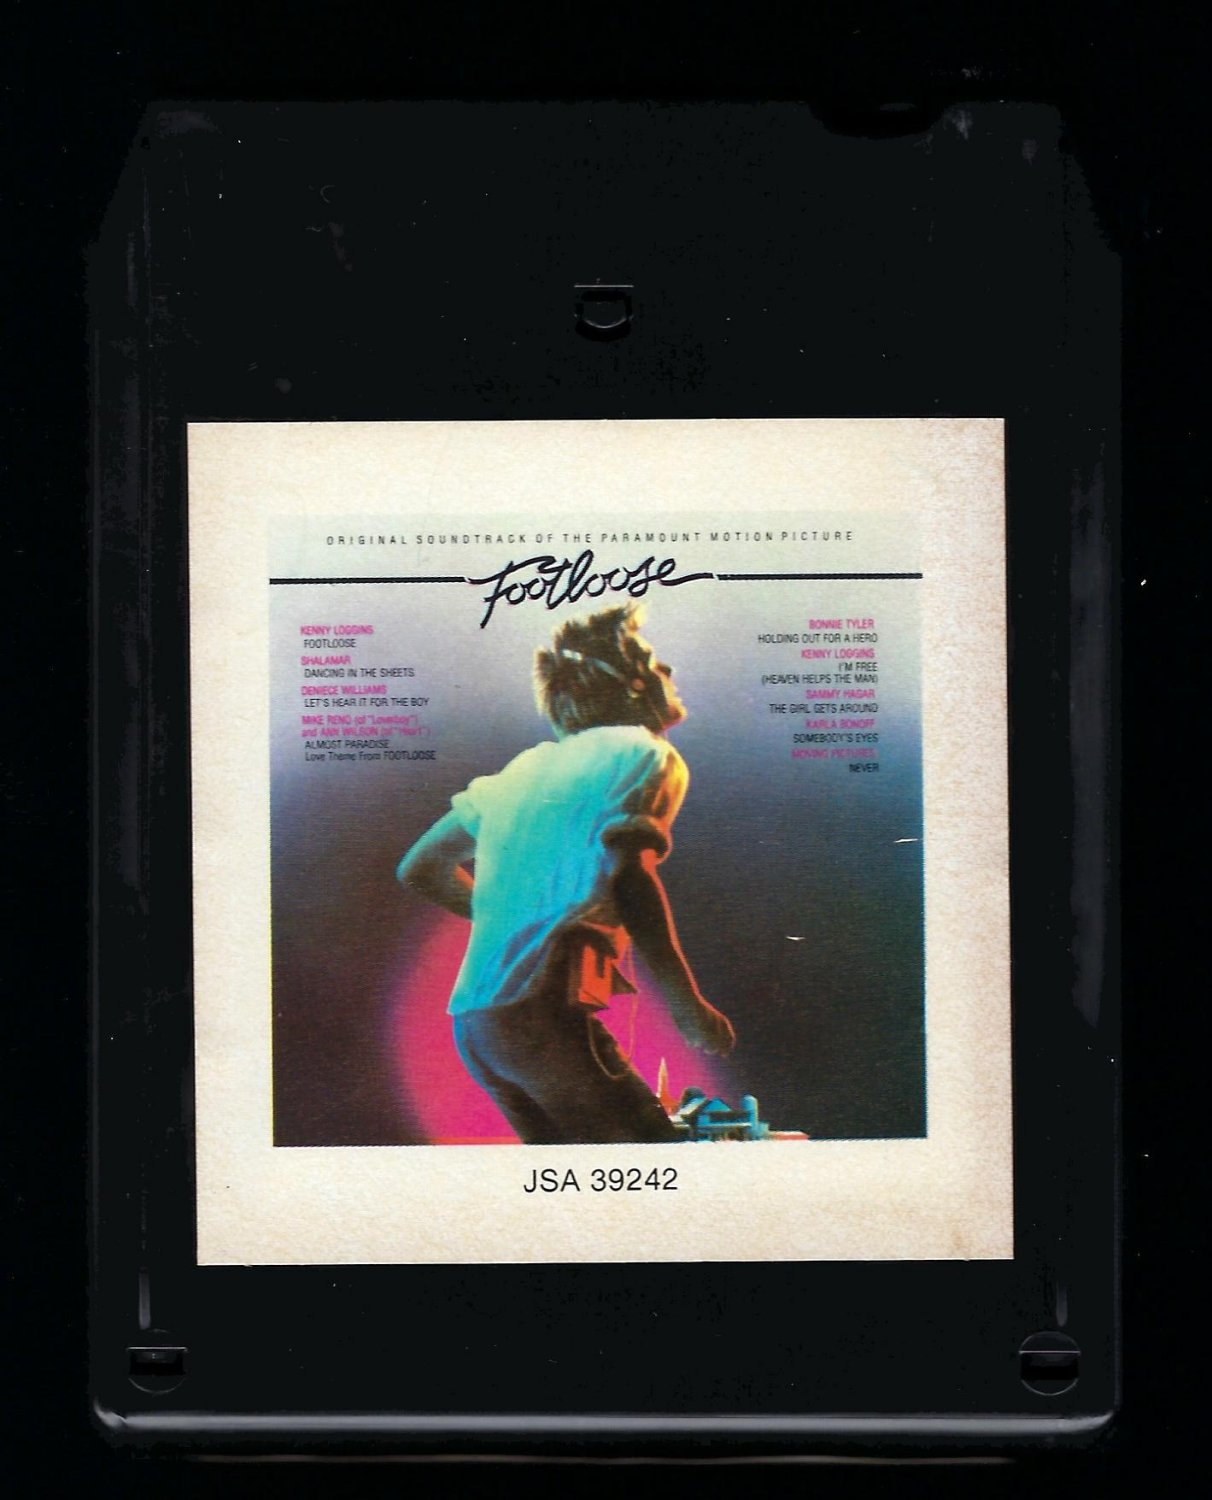 Footloose Original Motion Picture Soundtrack 1984 Crc A32 8 Track Tape